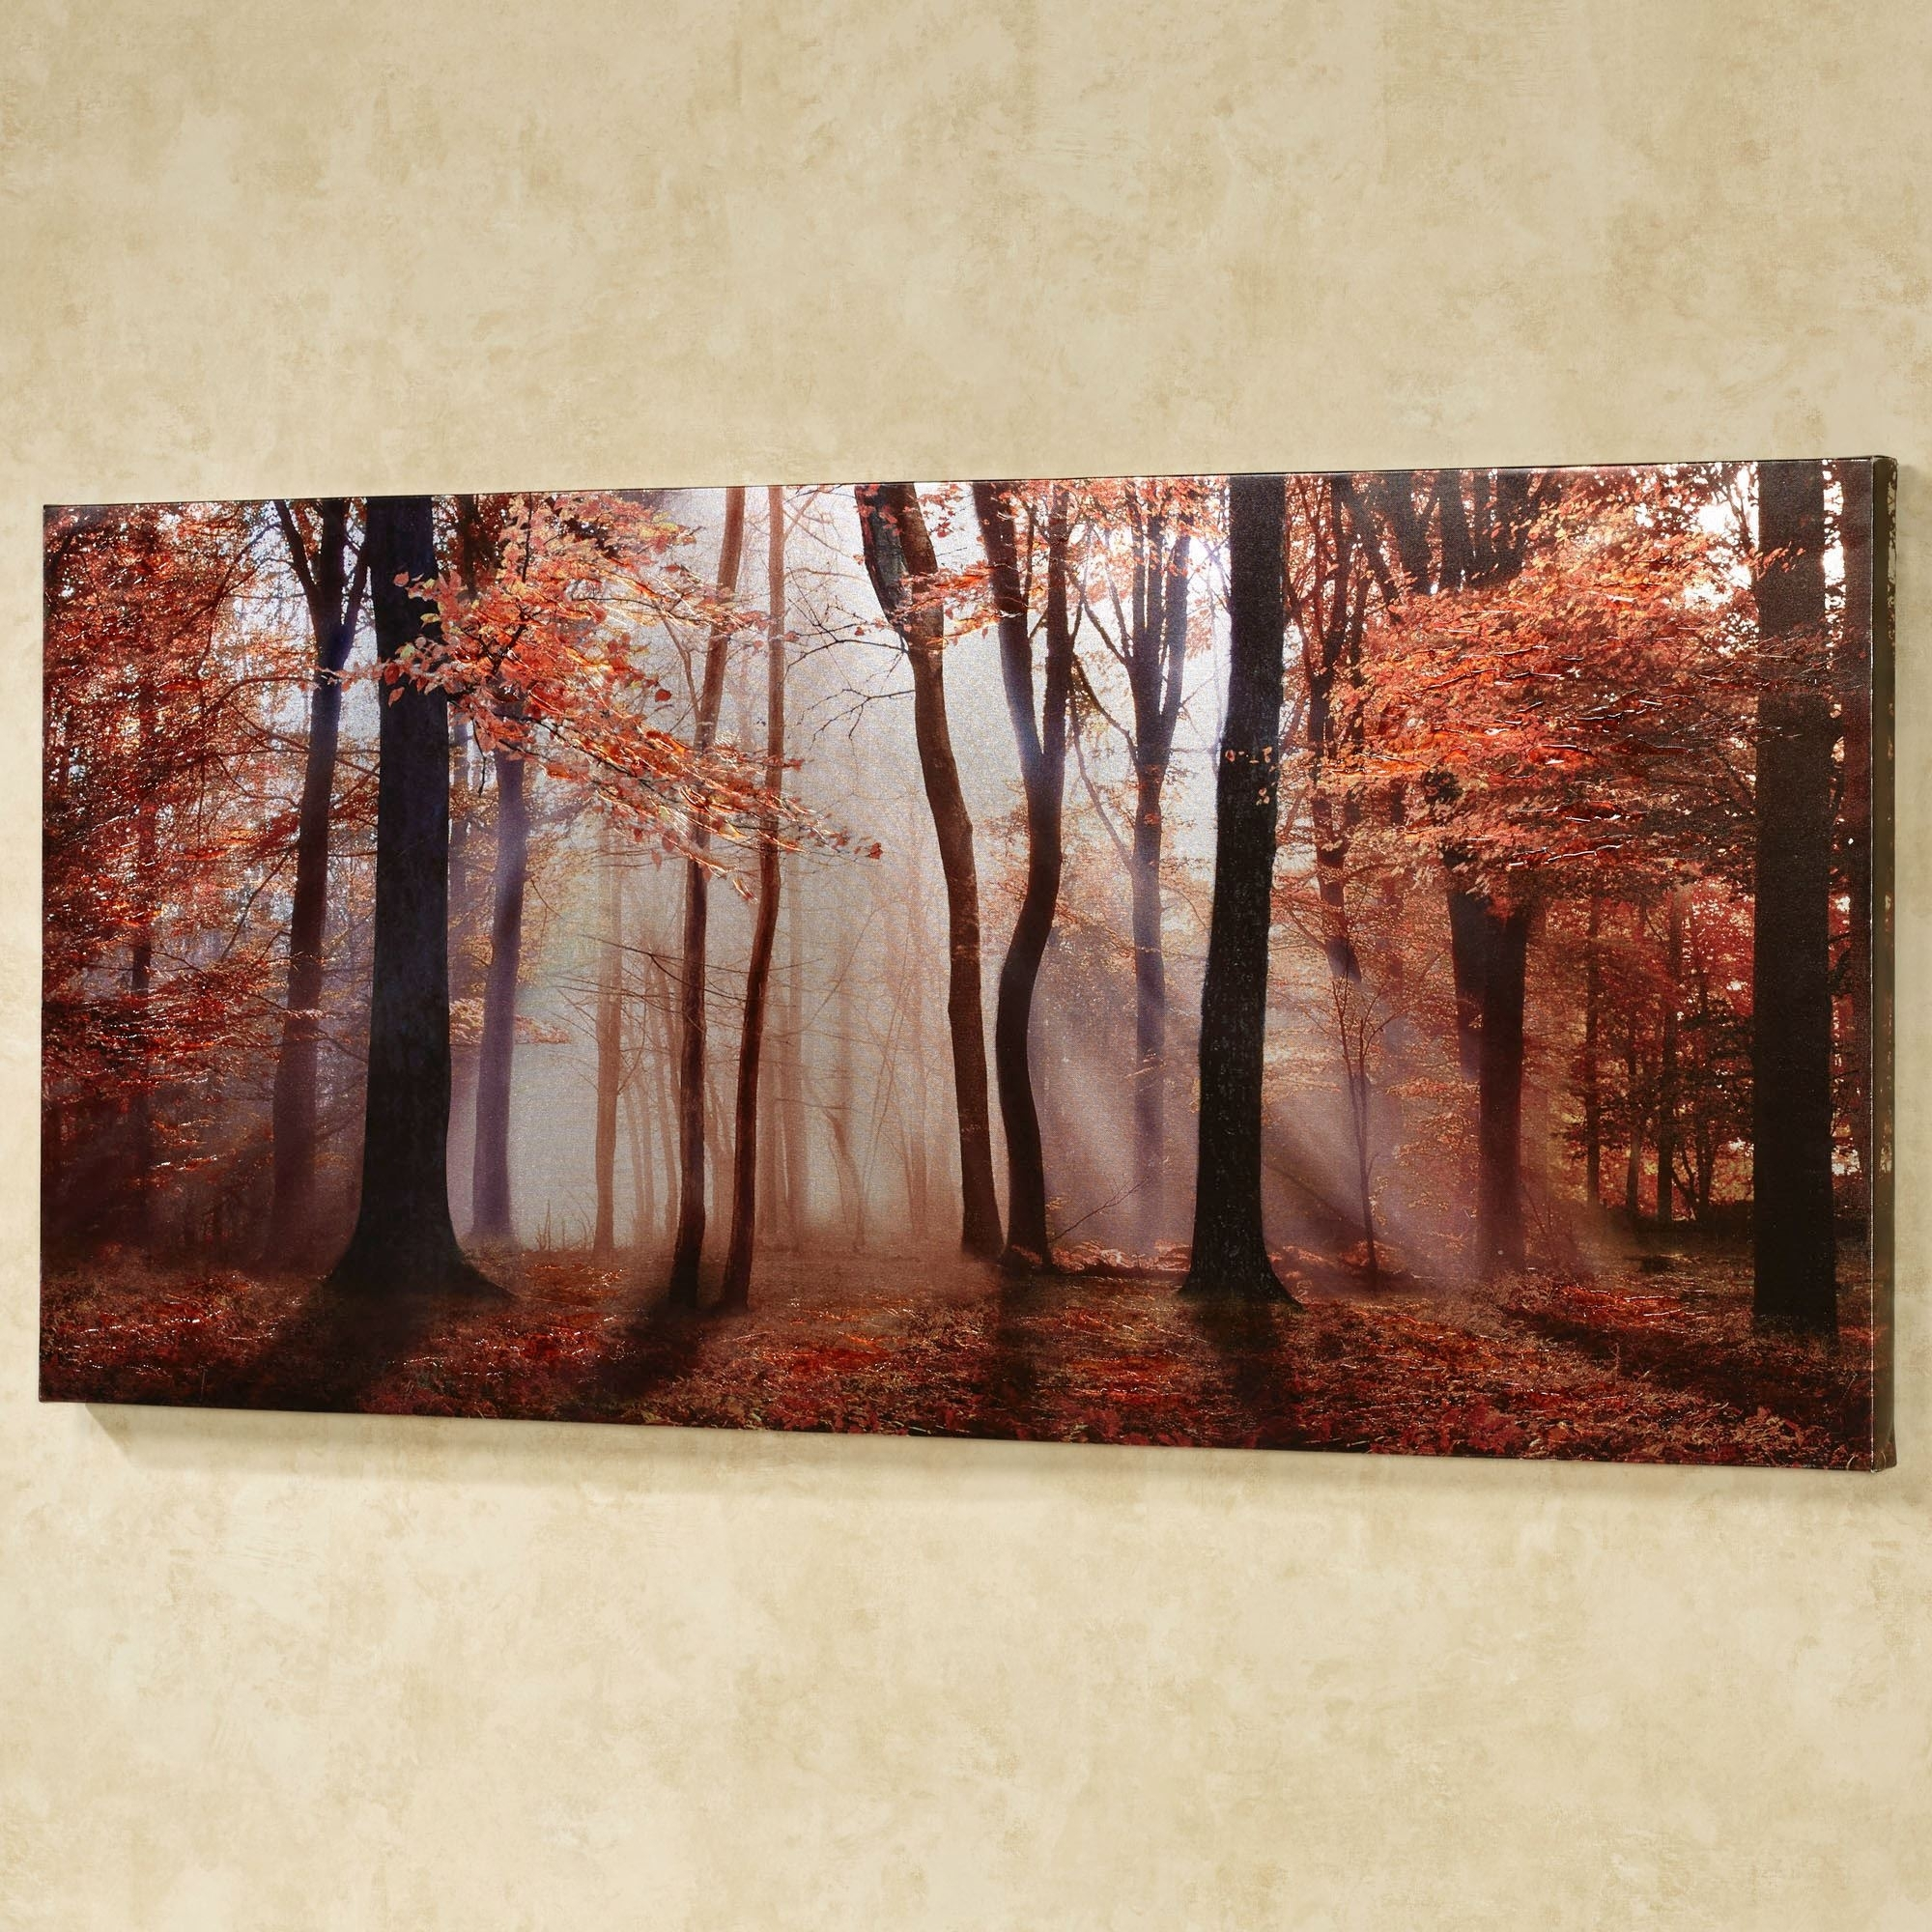 Autumns Allure Giclee Canvas Wall Art Regarding Most Recent Landscape Canvas Wall Art (View 13 of 15)